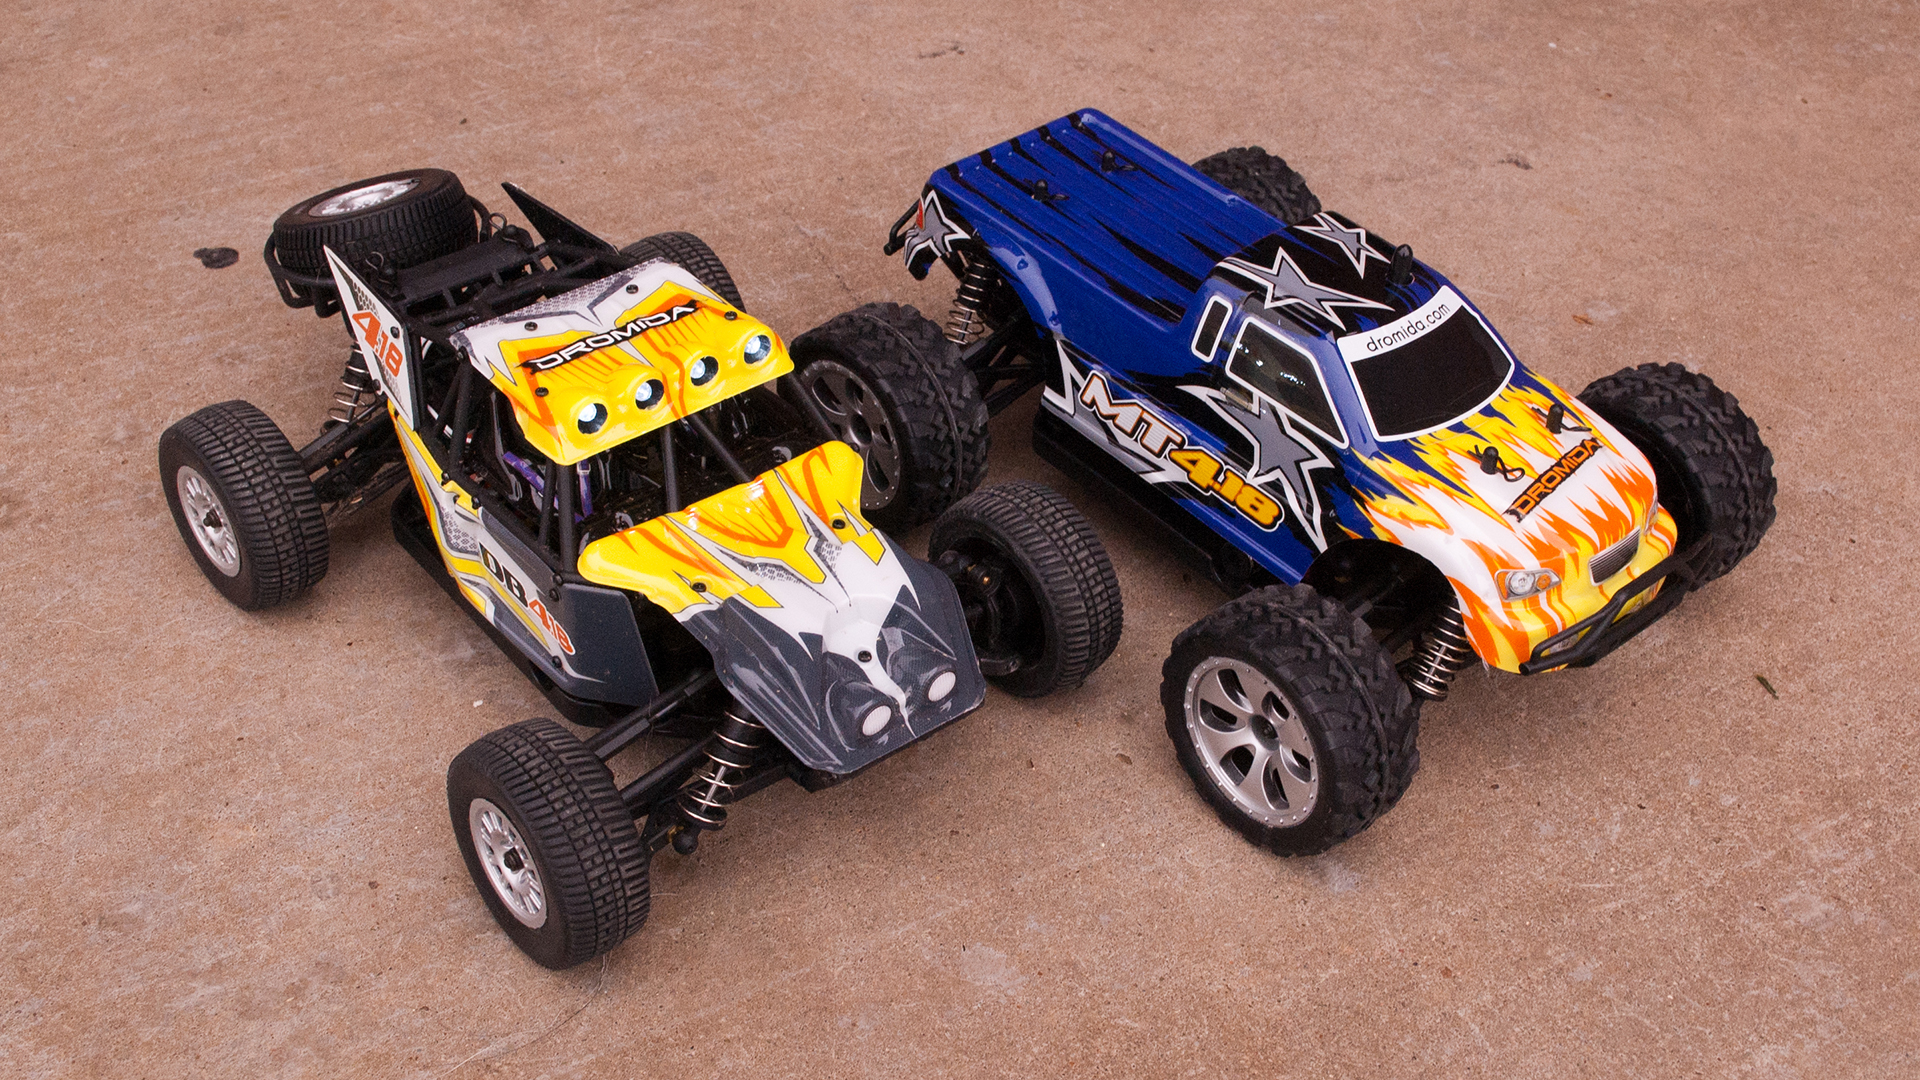 How To Get Into Hobby RC Small Scale Cars and Upgrades Tested